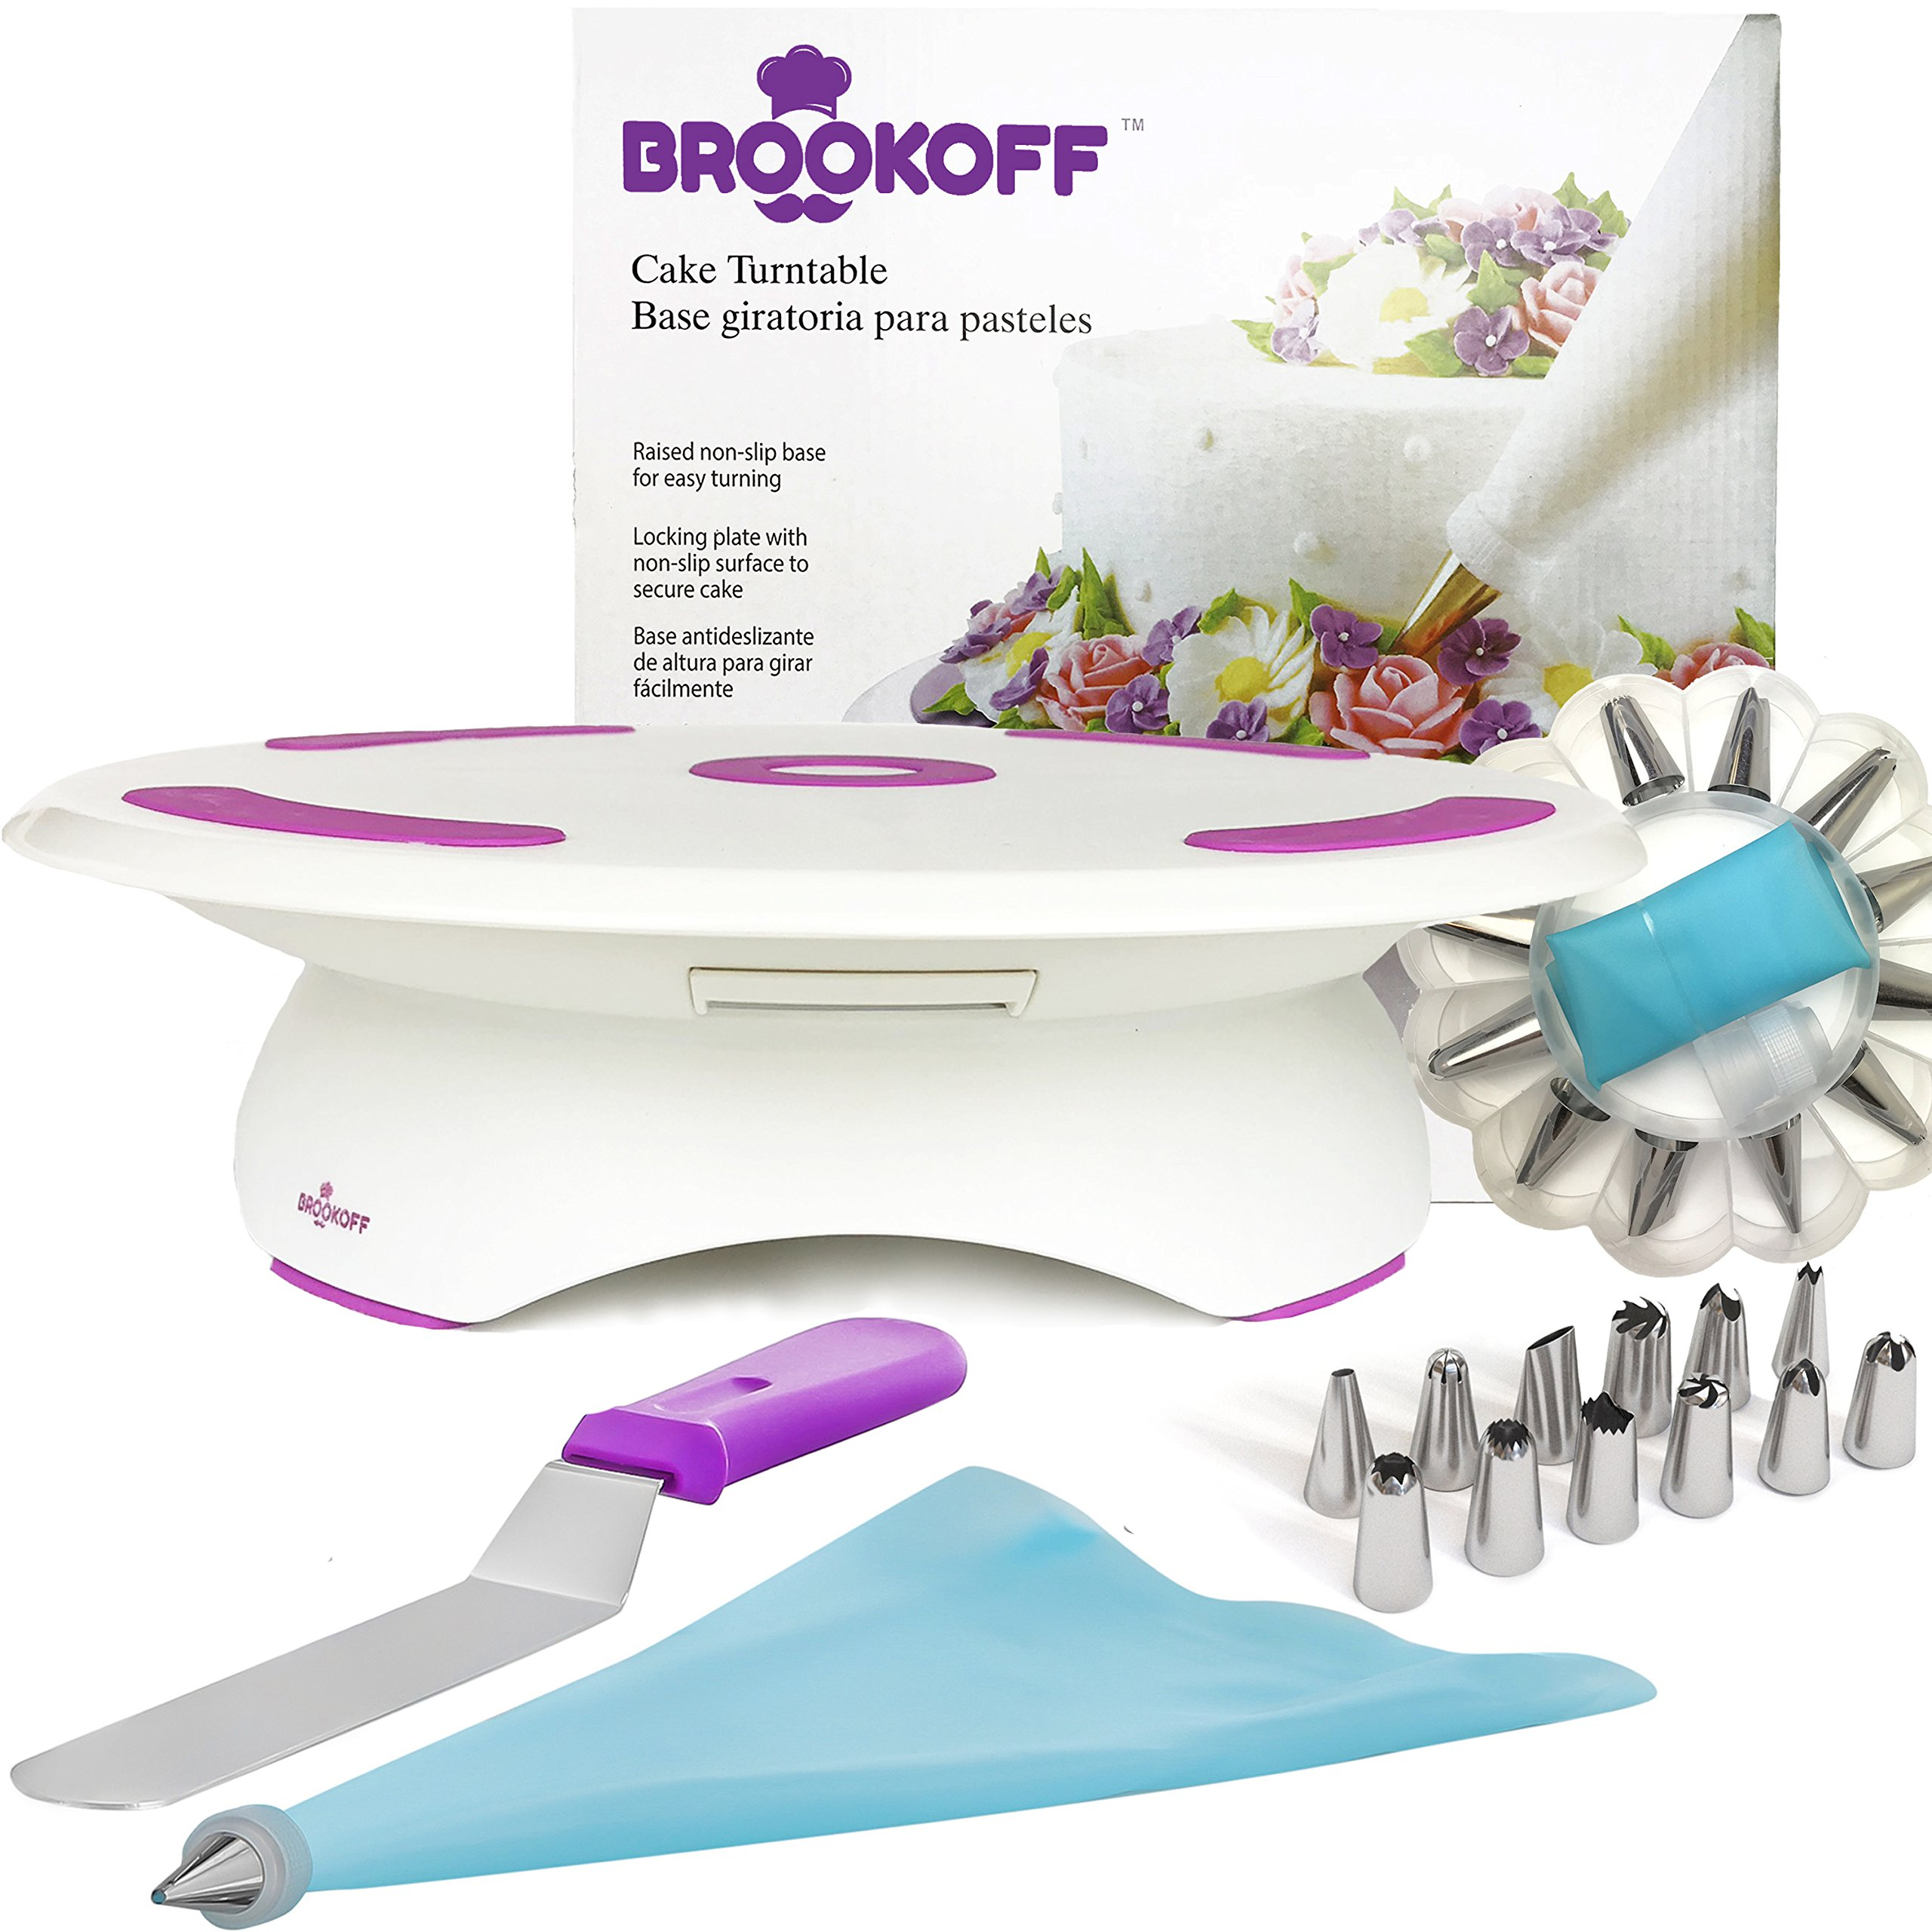 Cake Decorating Kit, Cake Turntable with Spatula, Icing Tips and Icing Bags, Decorating Supplies from Materials, Cake Stand with Lock and Rubberized Bottom